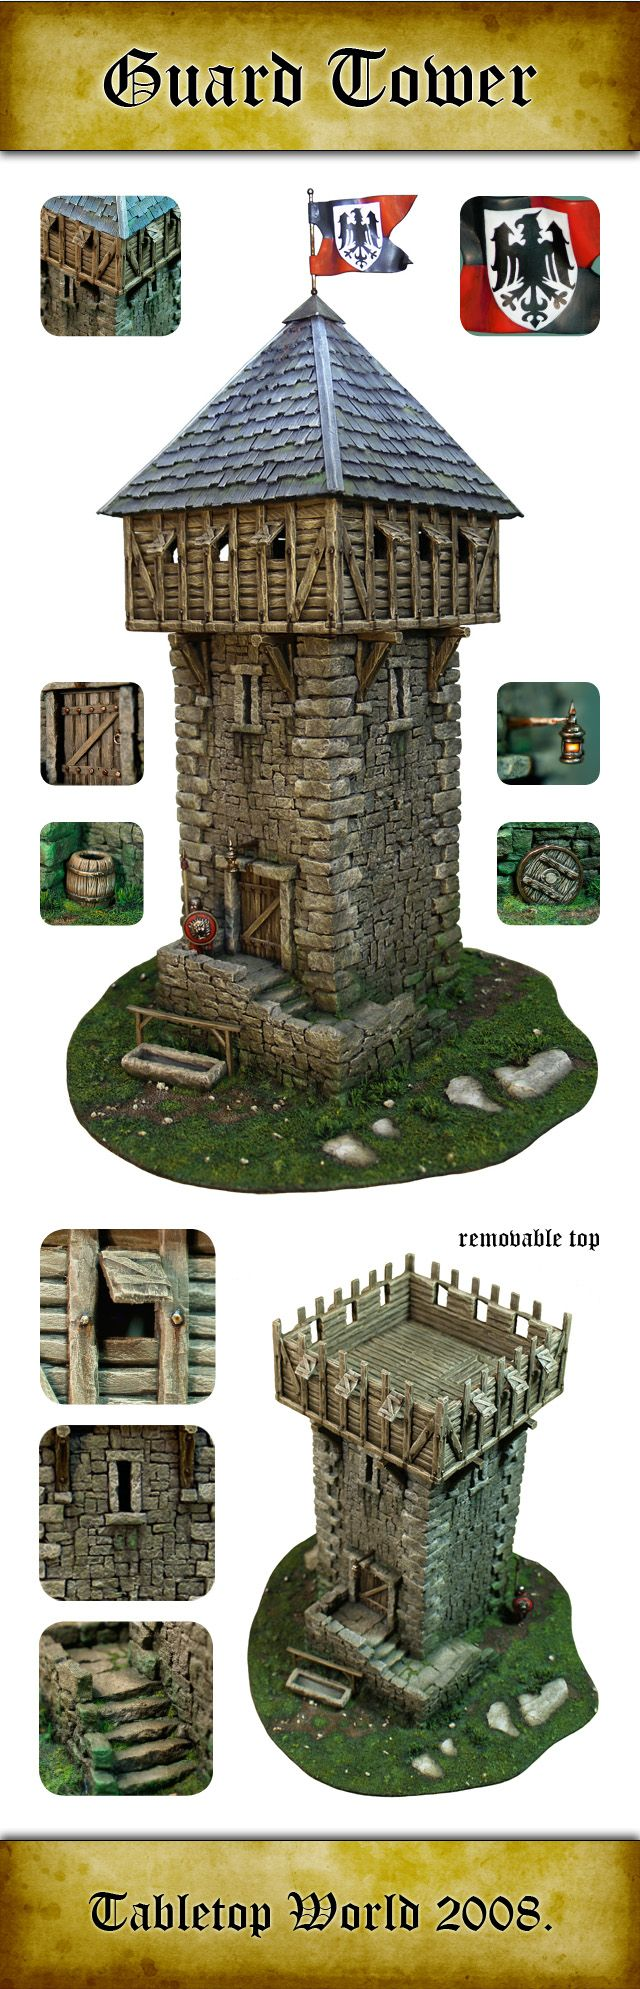 http://www.warseer.com/forums/showthread.php?177095-Building-the-medieval-city